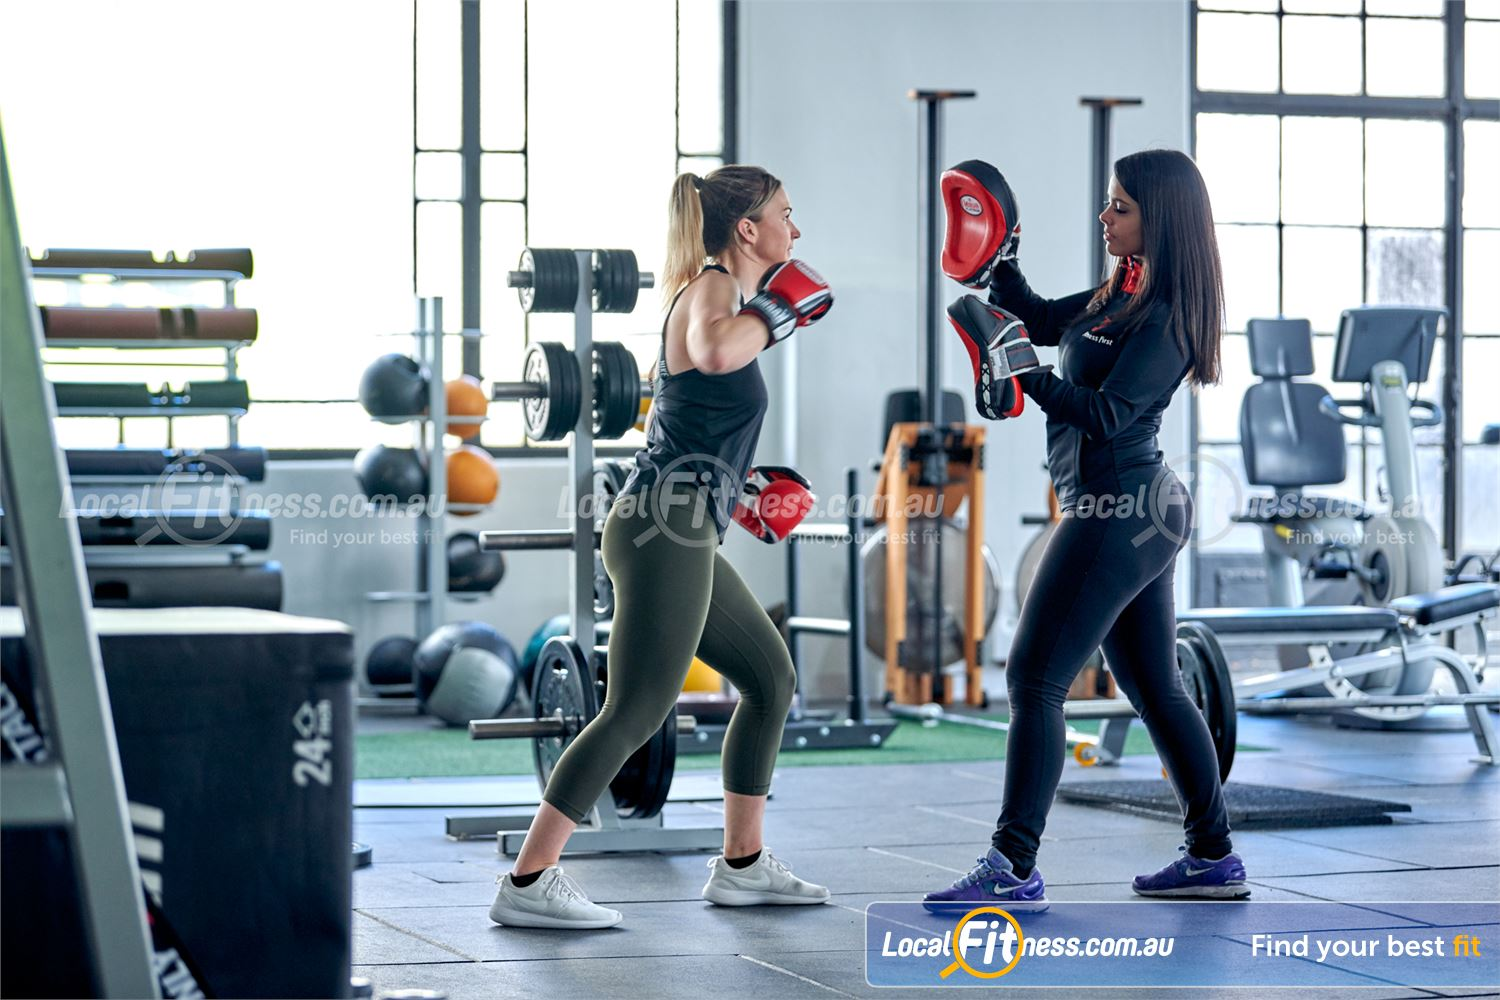 Fitness First Near Glenhaven Get a cardio boxing workout at Fitness First Castle Hill gym.